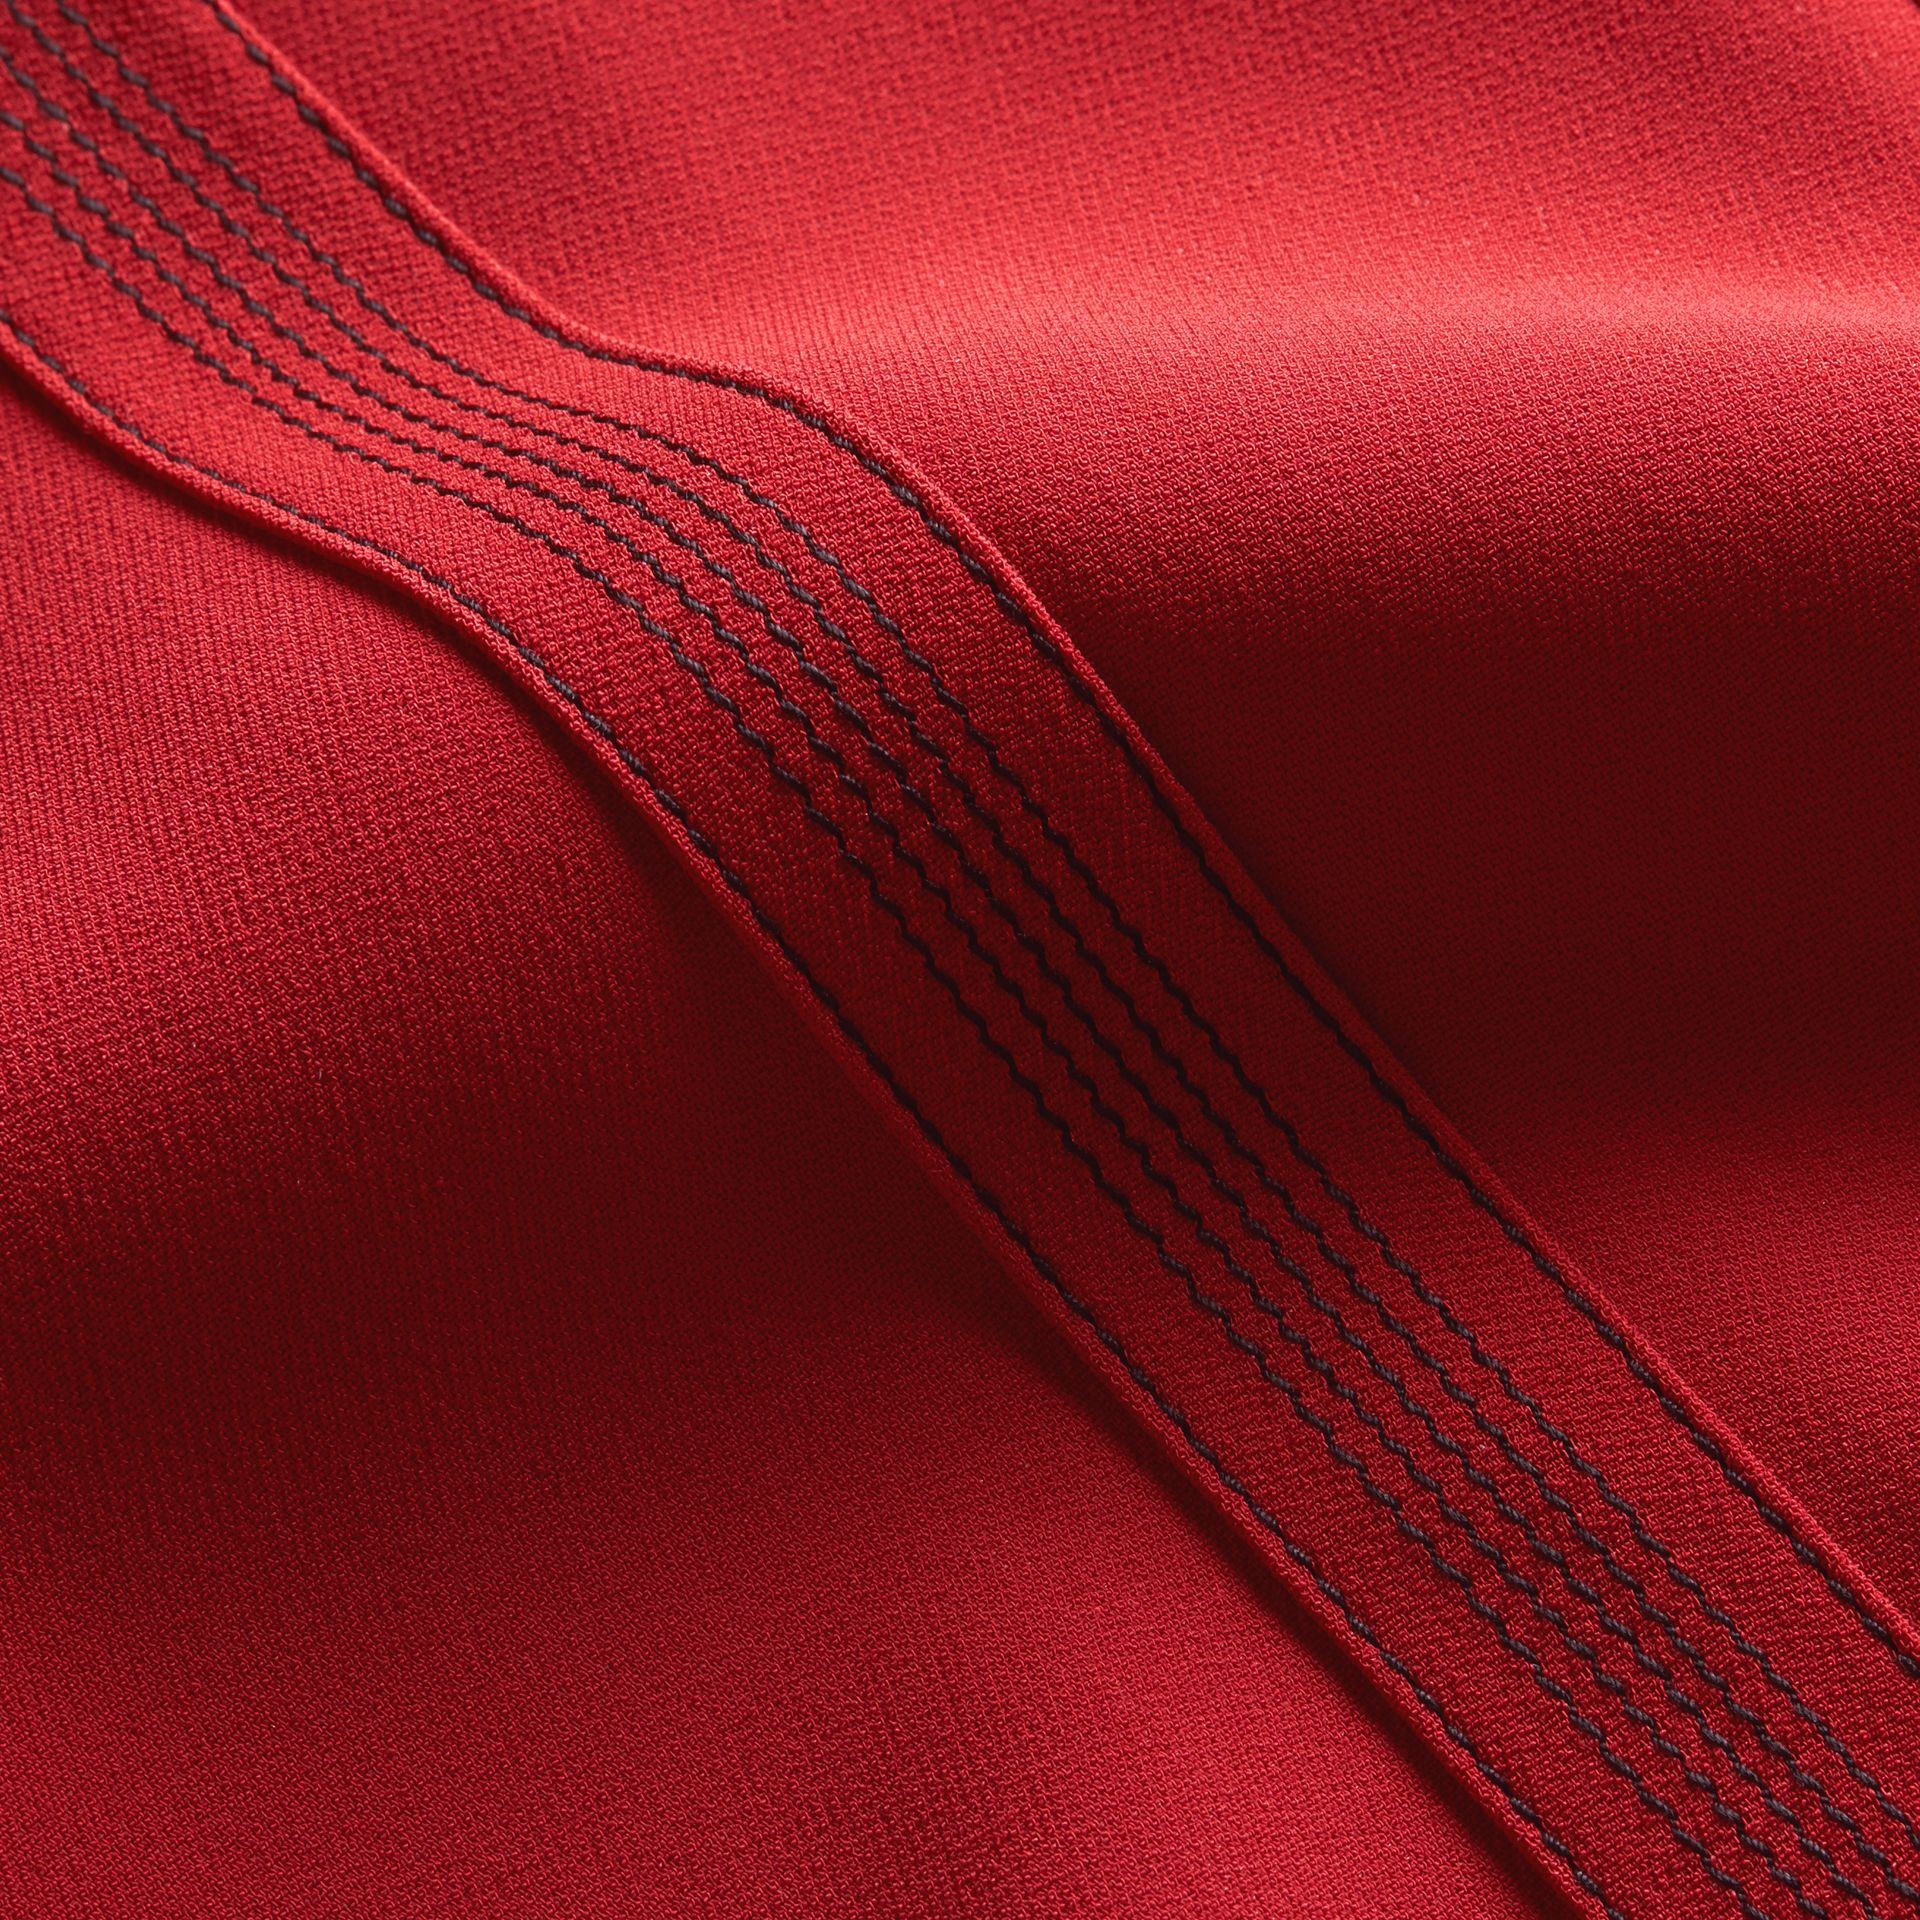 Parade red Short-sleeved Topstitch Detail Shift Dress - gallery image 2